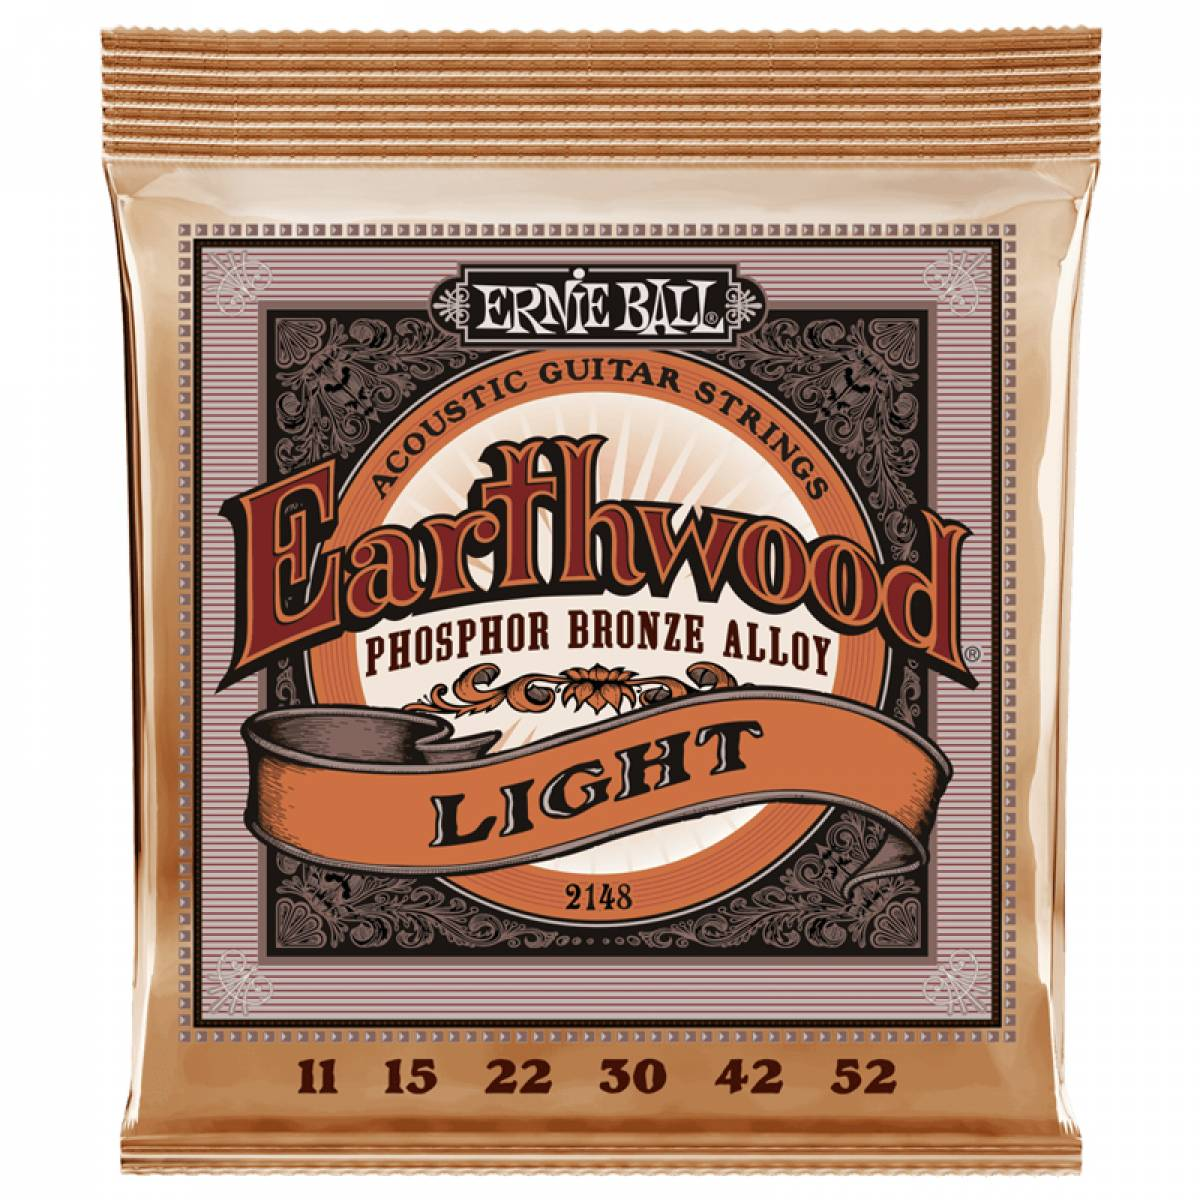 Encordoamento para Violão Ernie Ball 2148 0.11 Earthwood Light